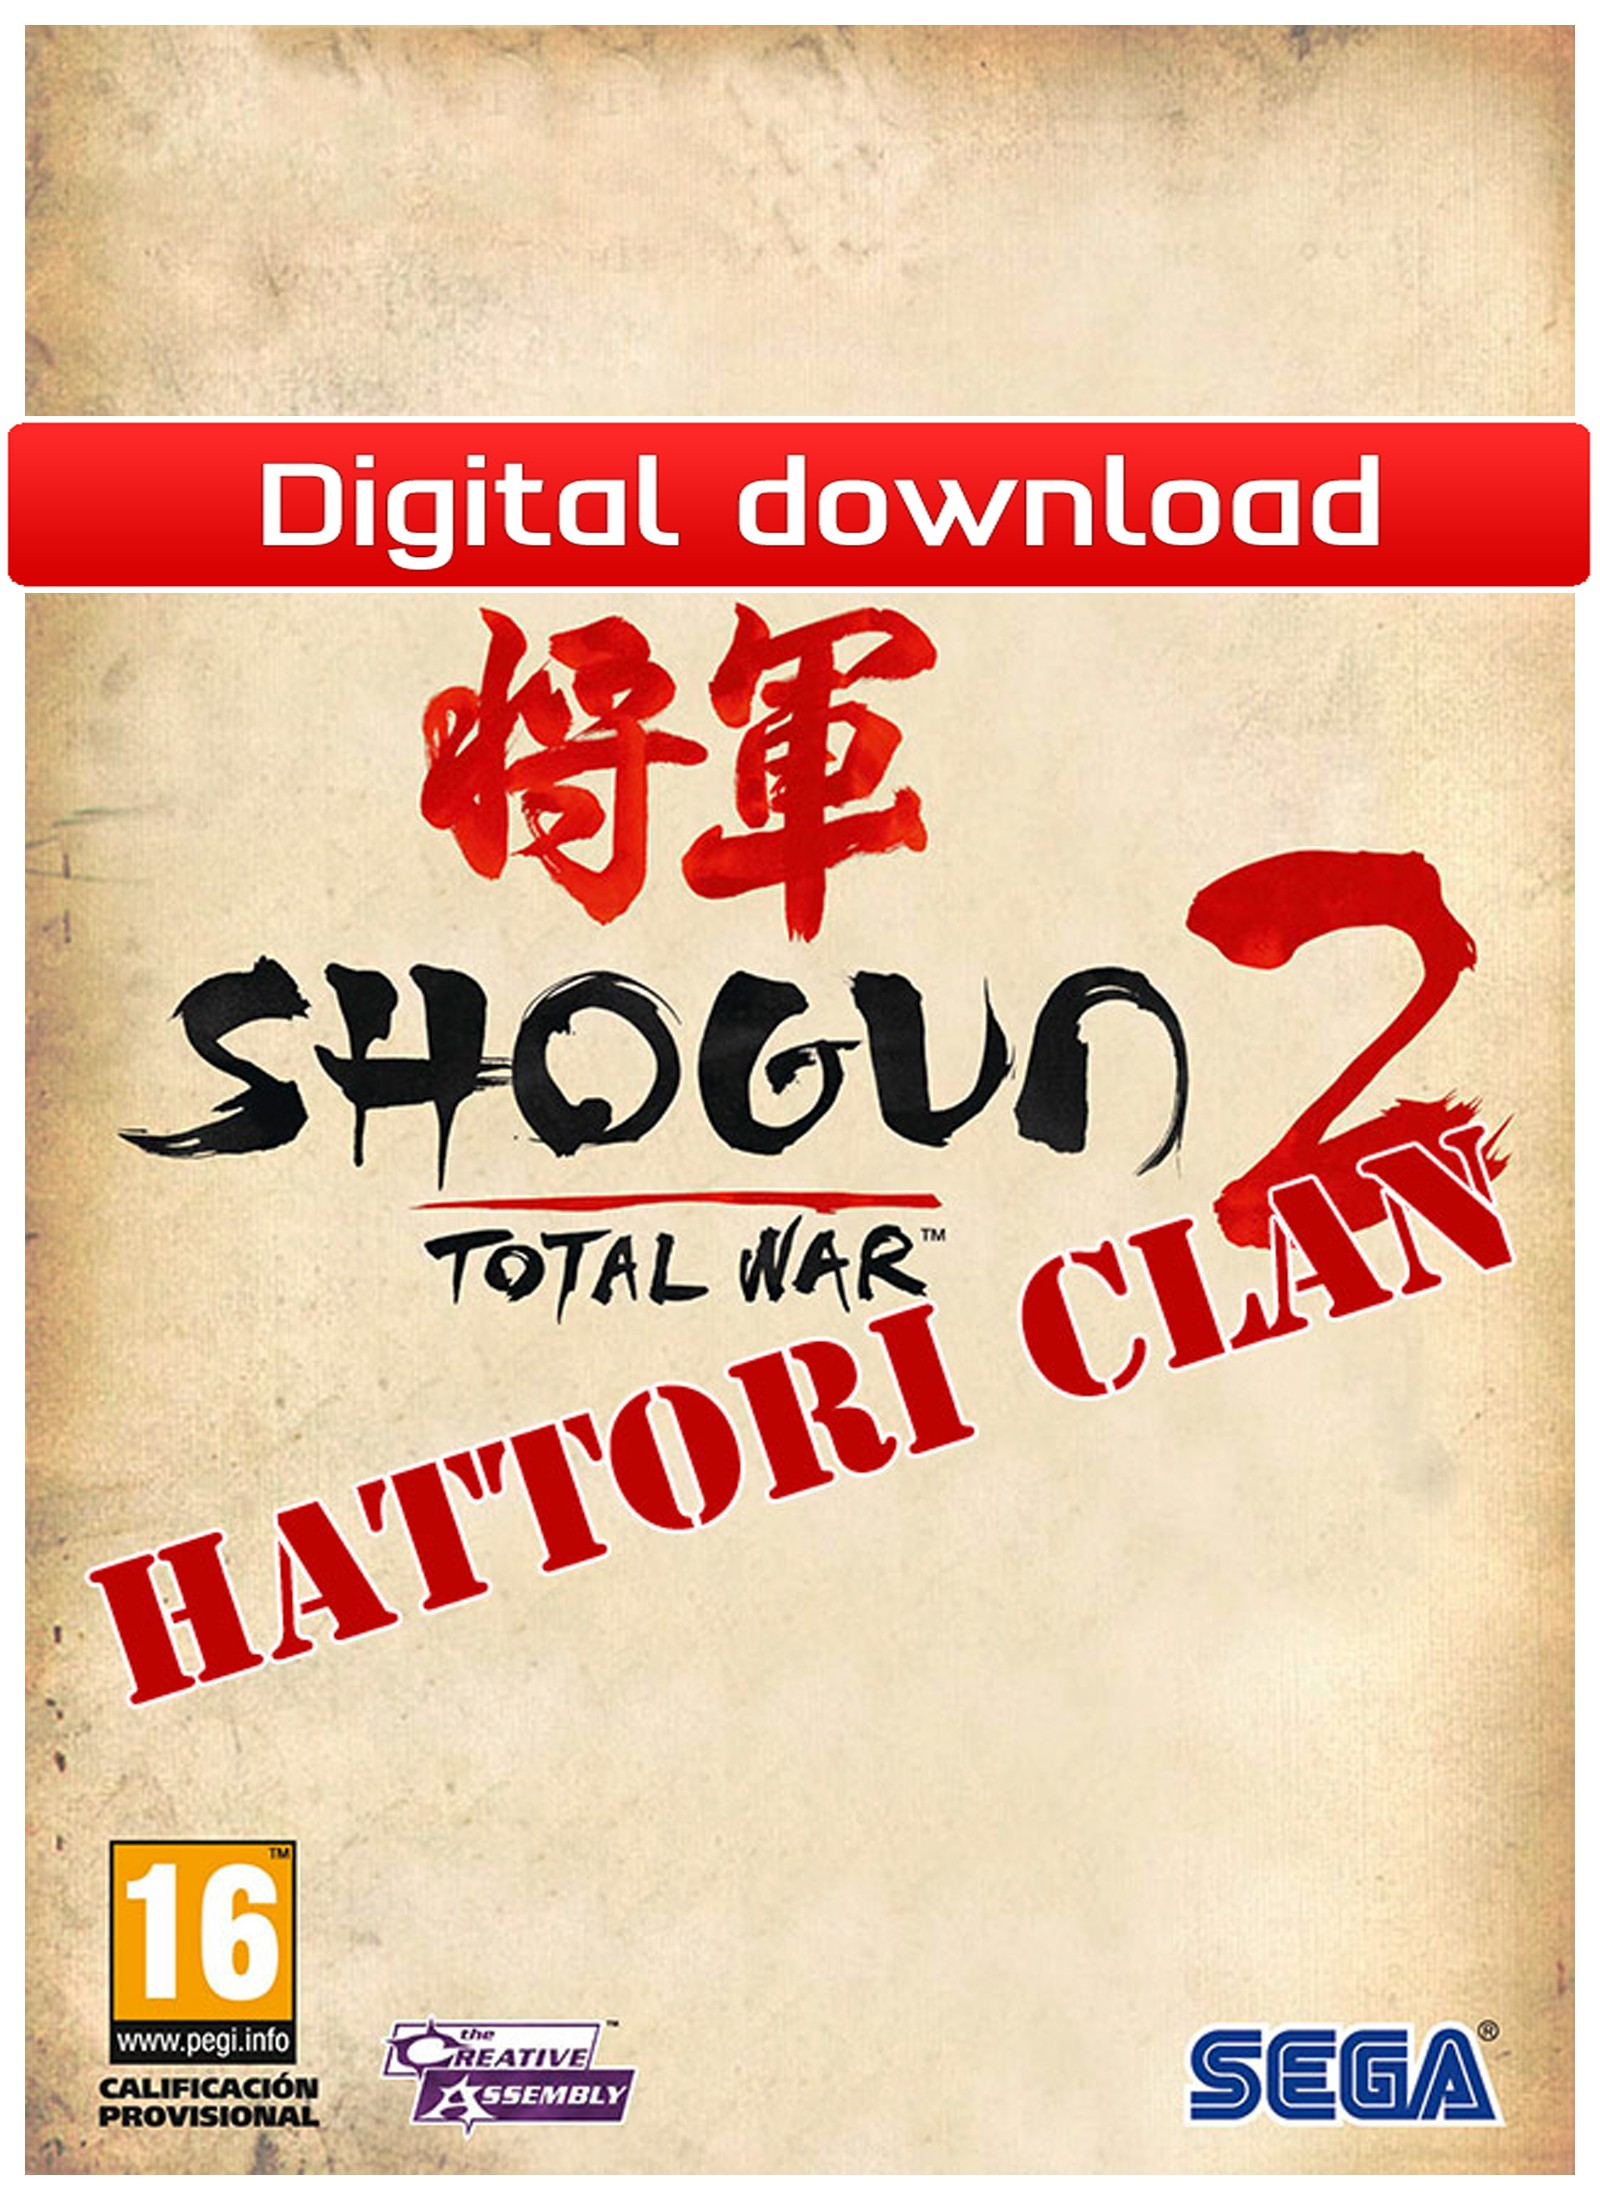 28210 : Total War: Shogun 2: Hattori Clan Pack (PC nedlastning)